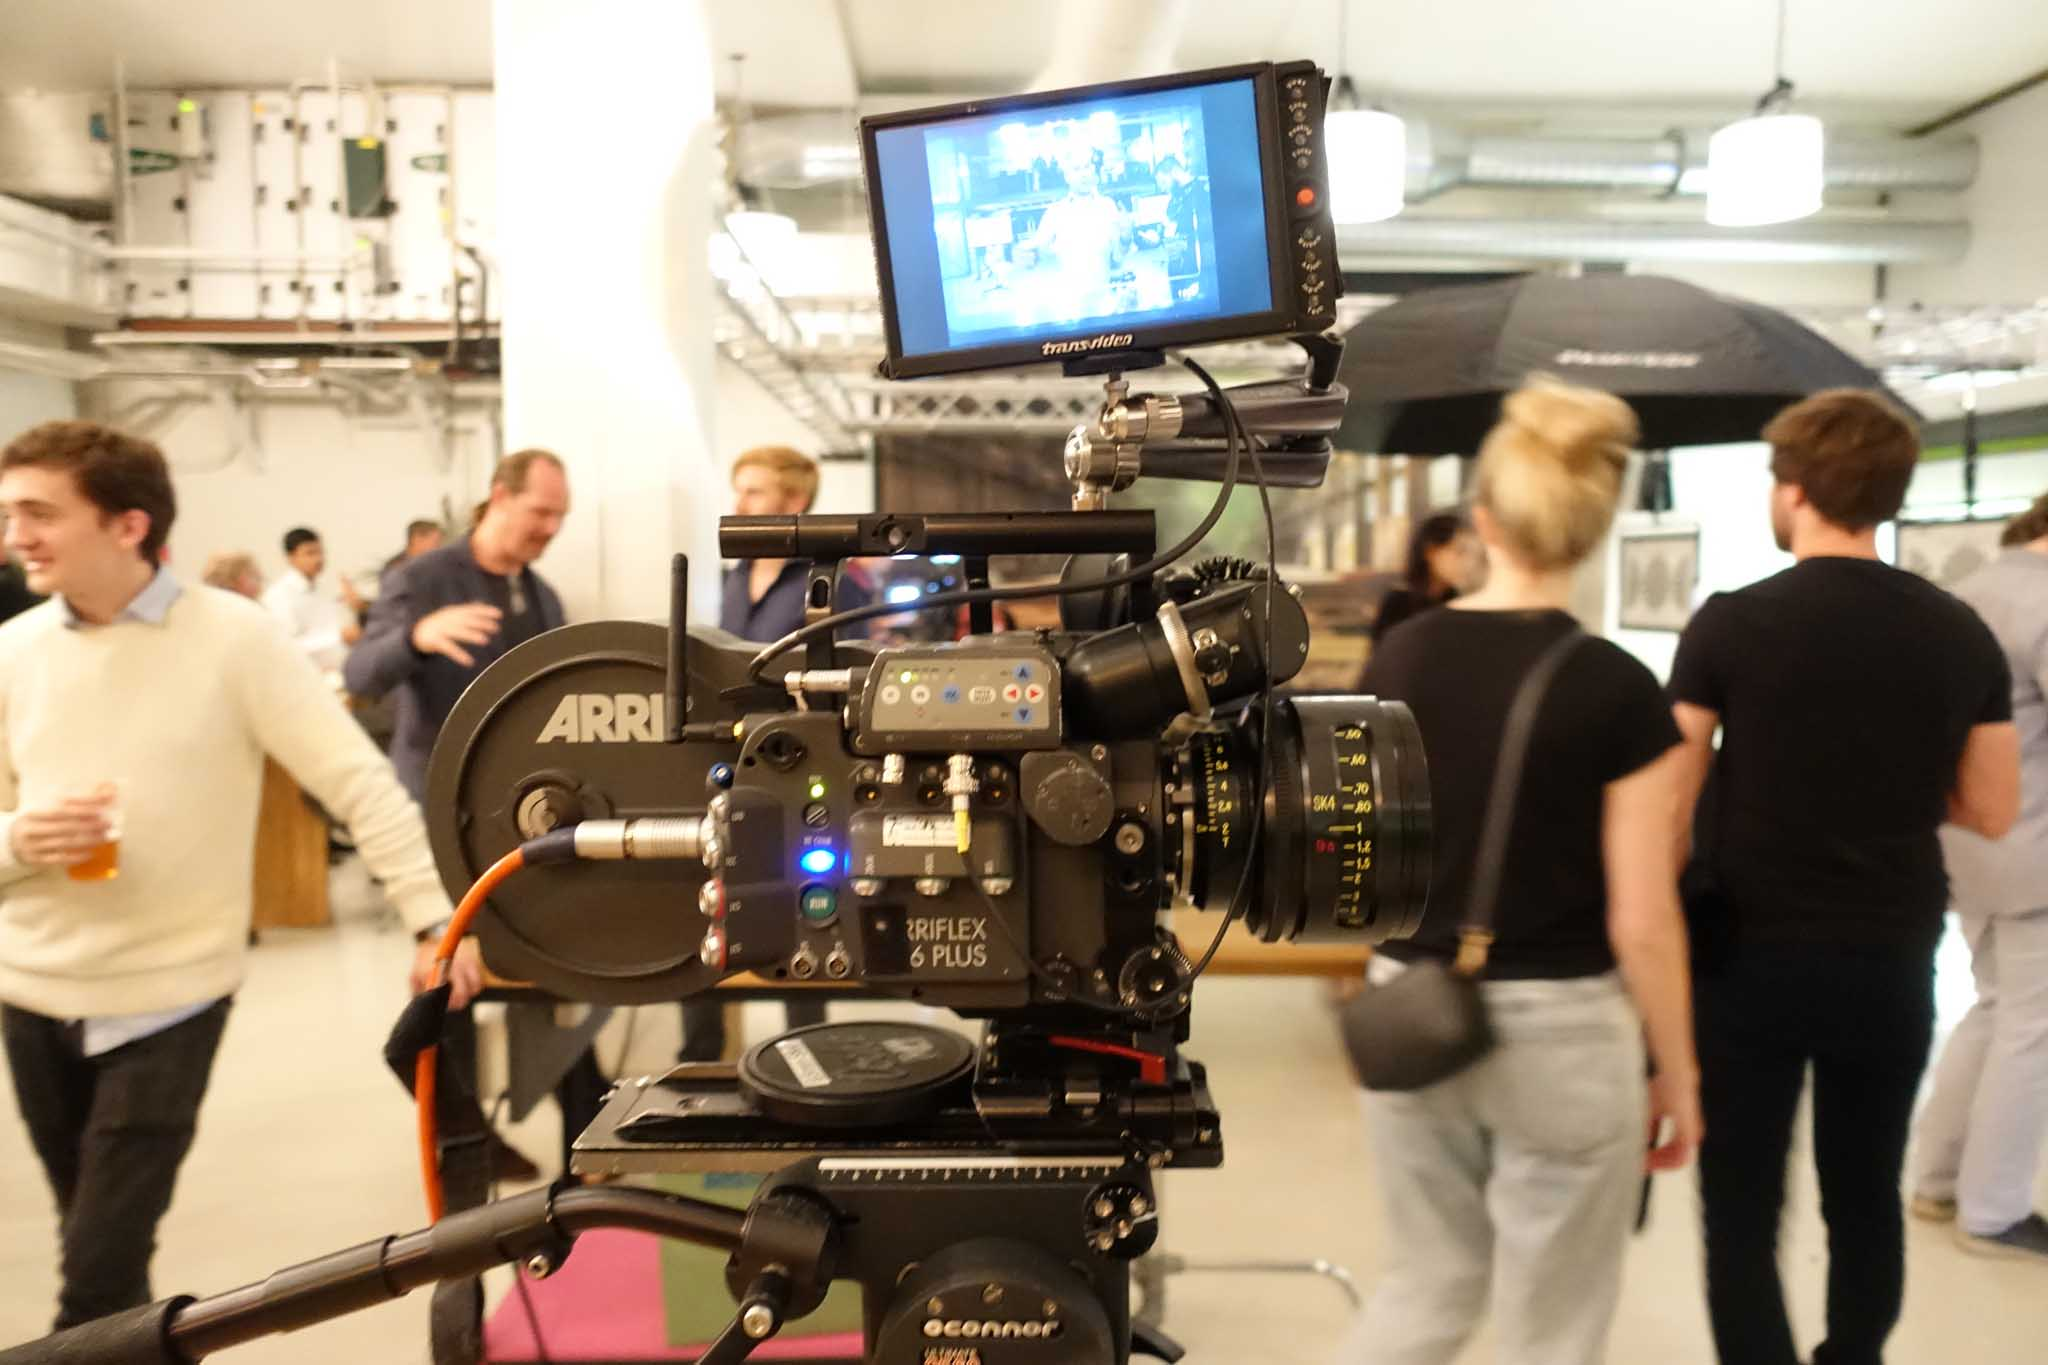 16mm production alive and well